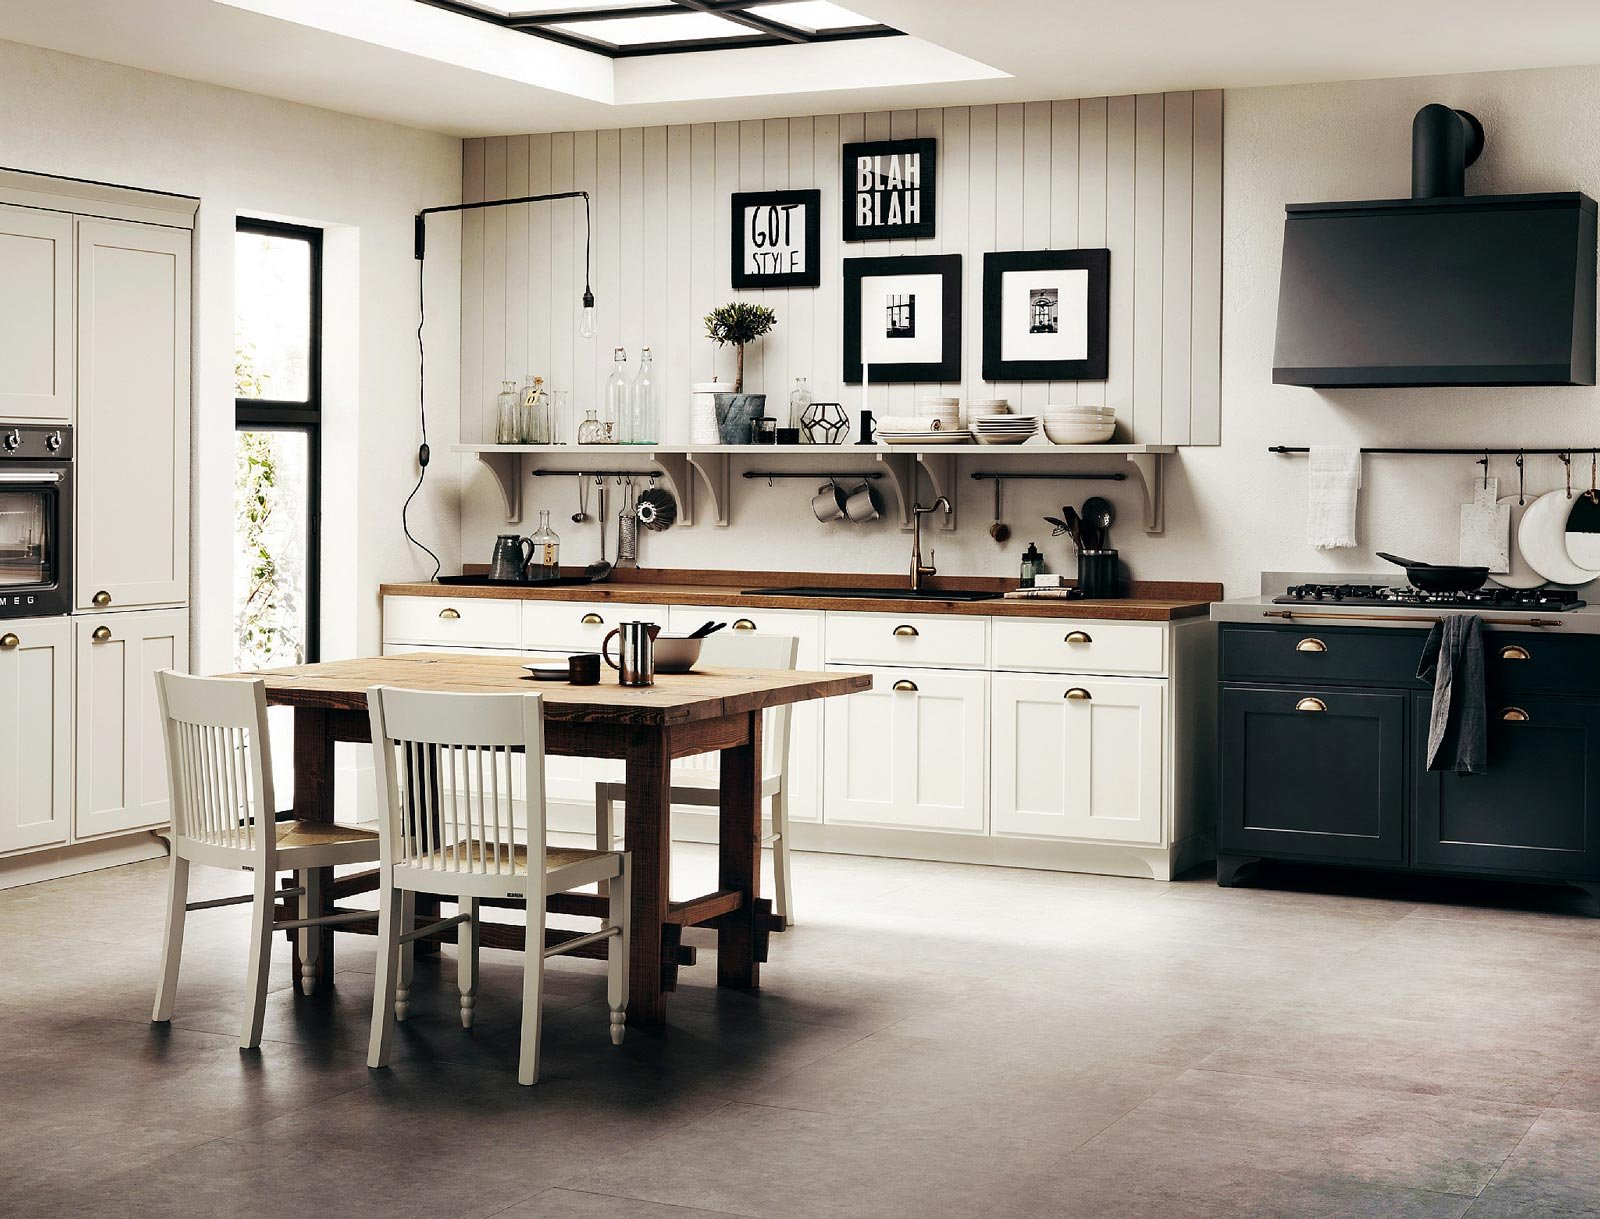 Beautiful Scavolini Accessori Cucina Images - Skilifts.us ...